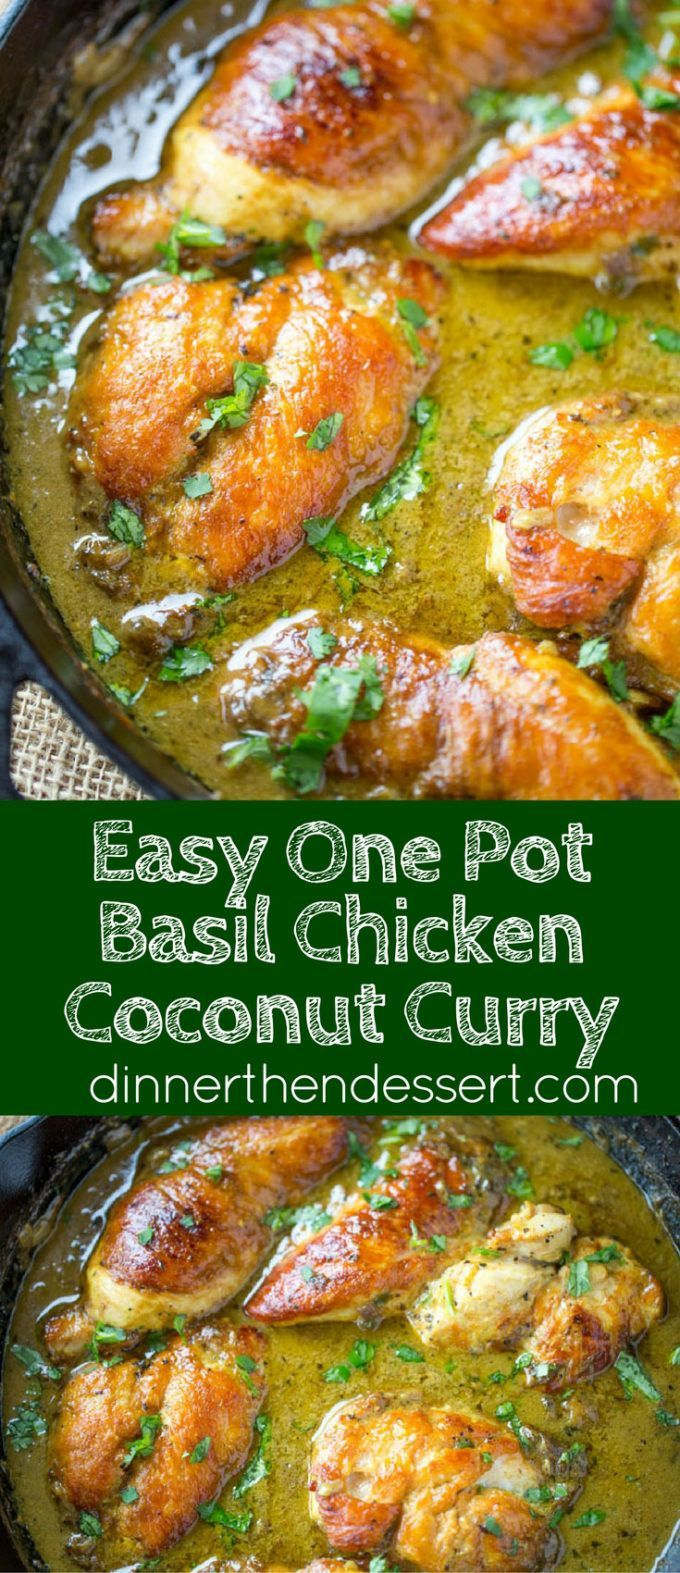 One Pot Basil Chicken Coconut Curry is a mild flavored curry with a bit of a kick from jalapenos that even curry haters with love and it's a breeze to make in one pot!